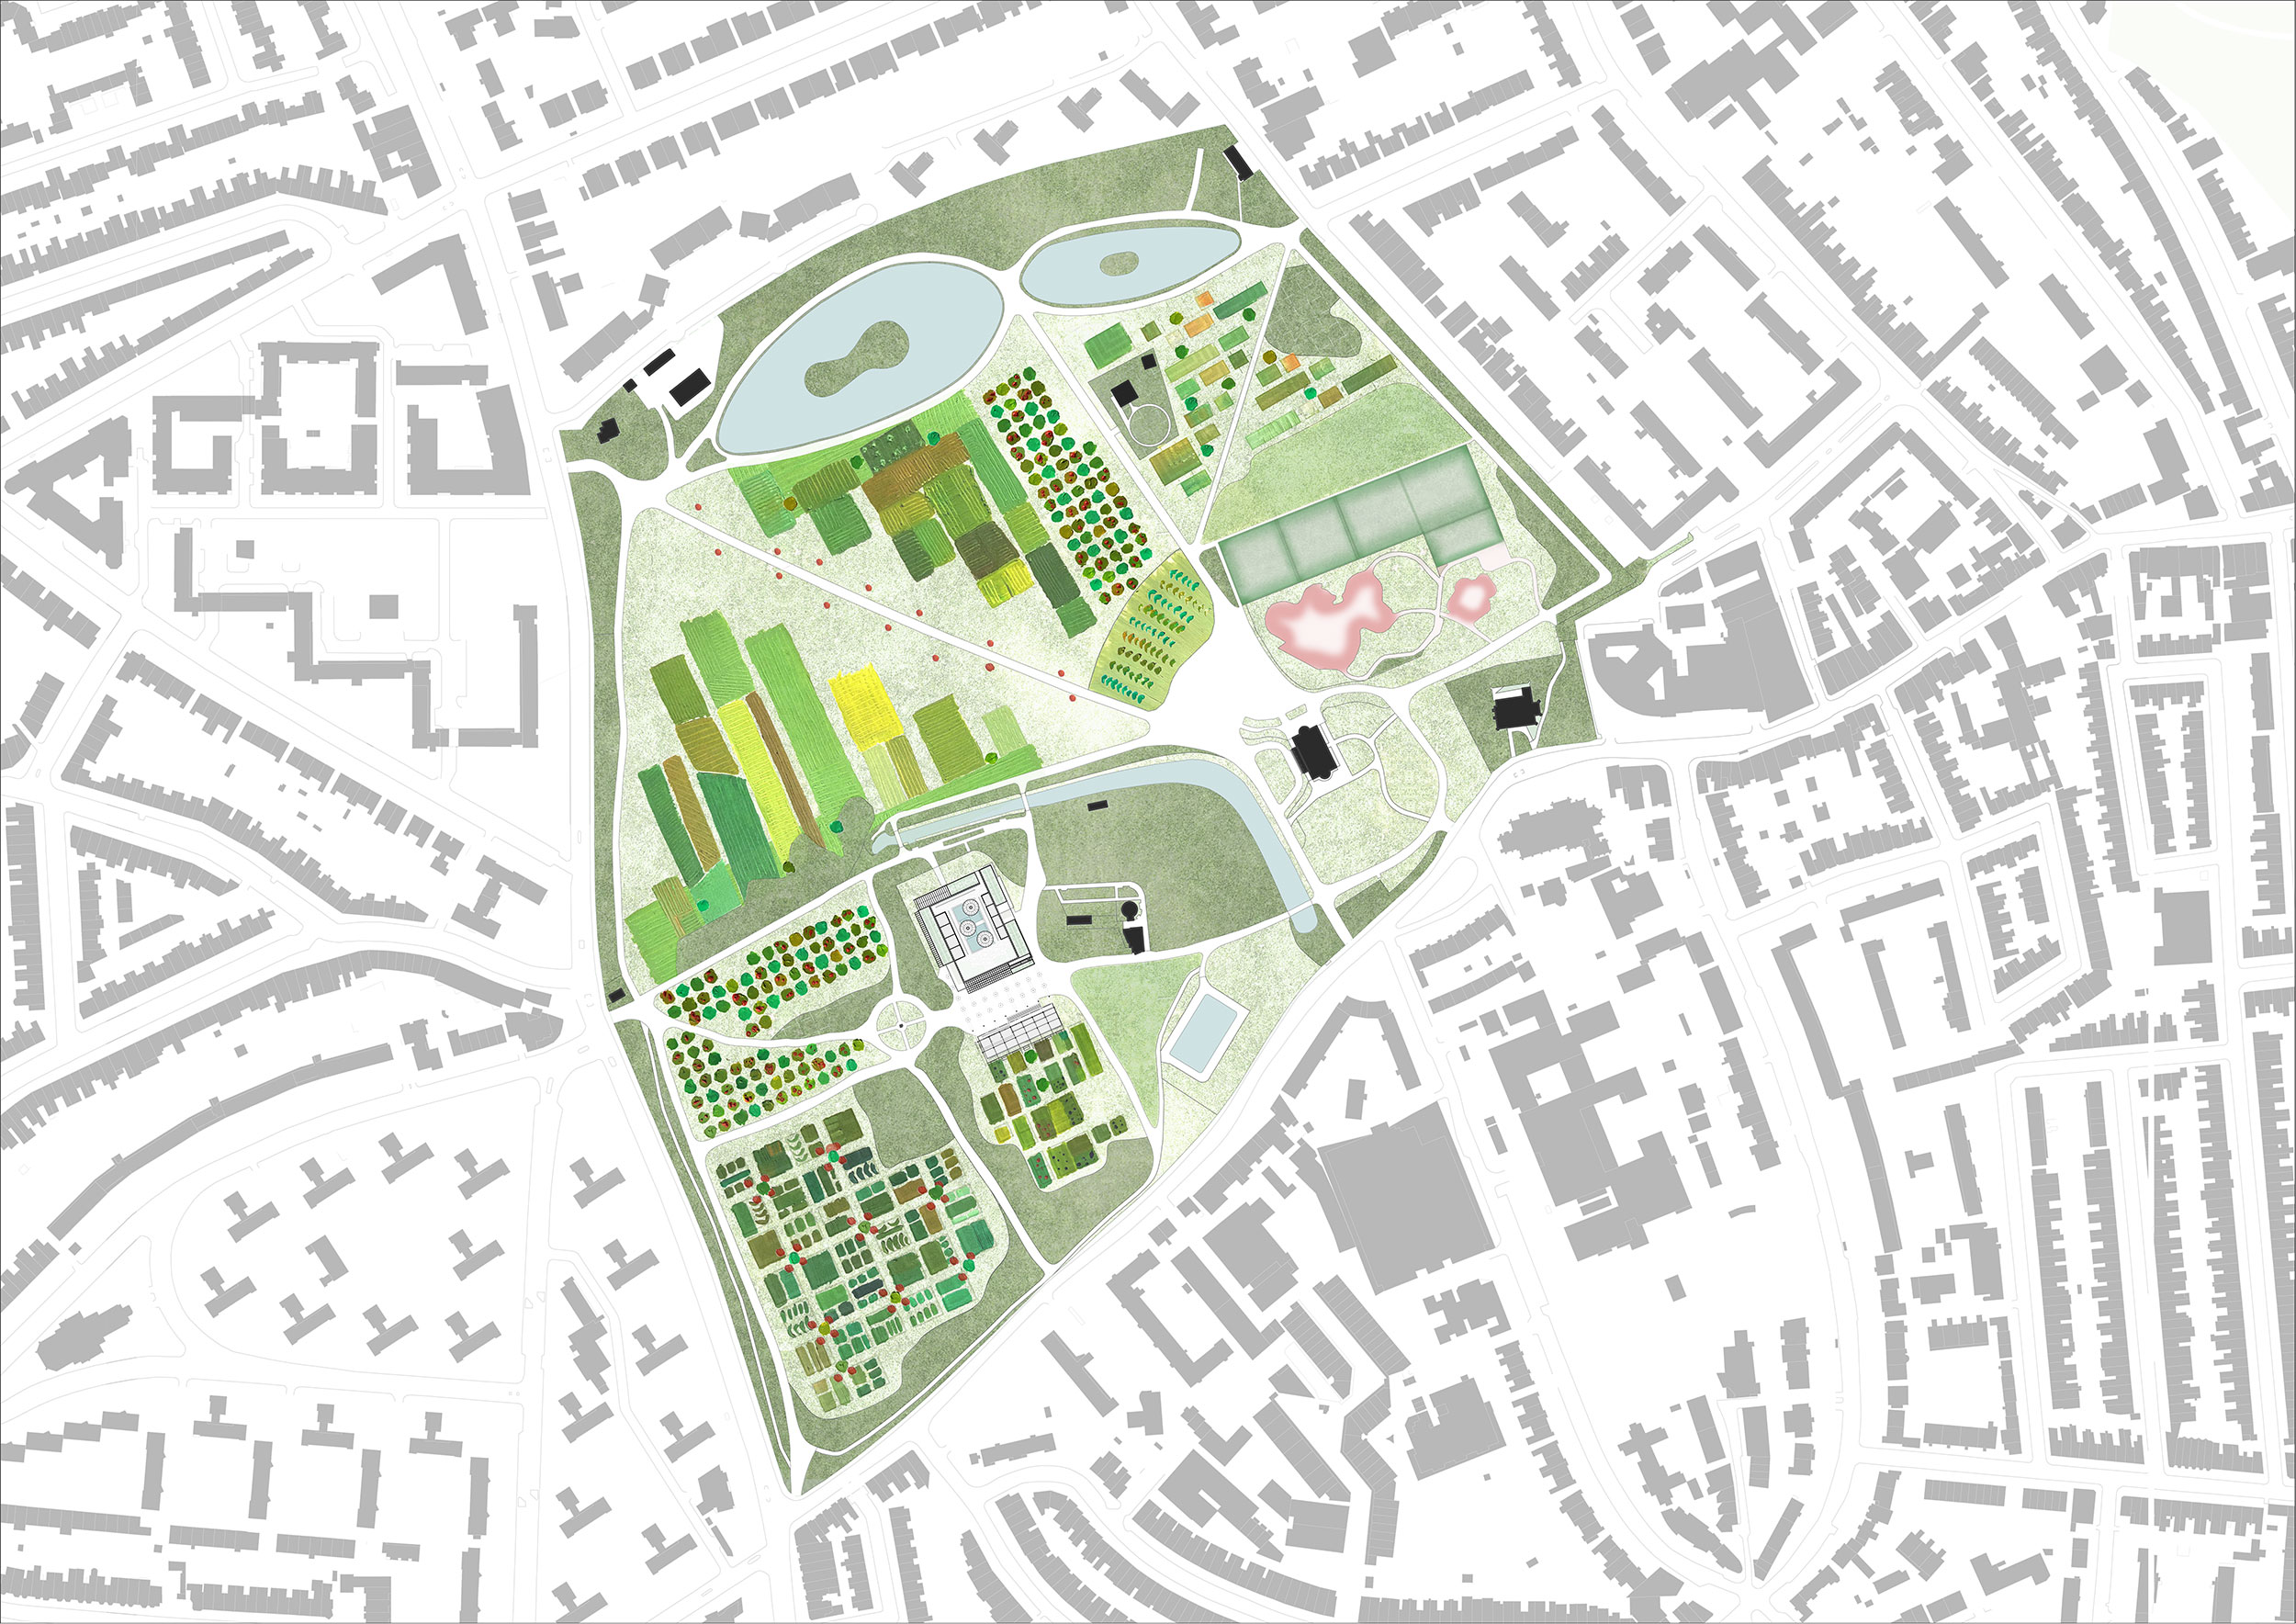 Masterplan strategy of Clissold Park – a new model of food production, integrated in local ecologies and rooted in local communities